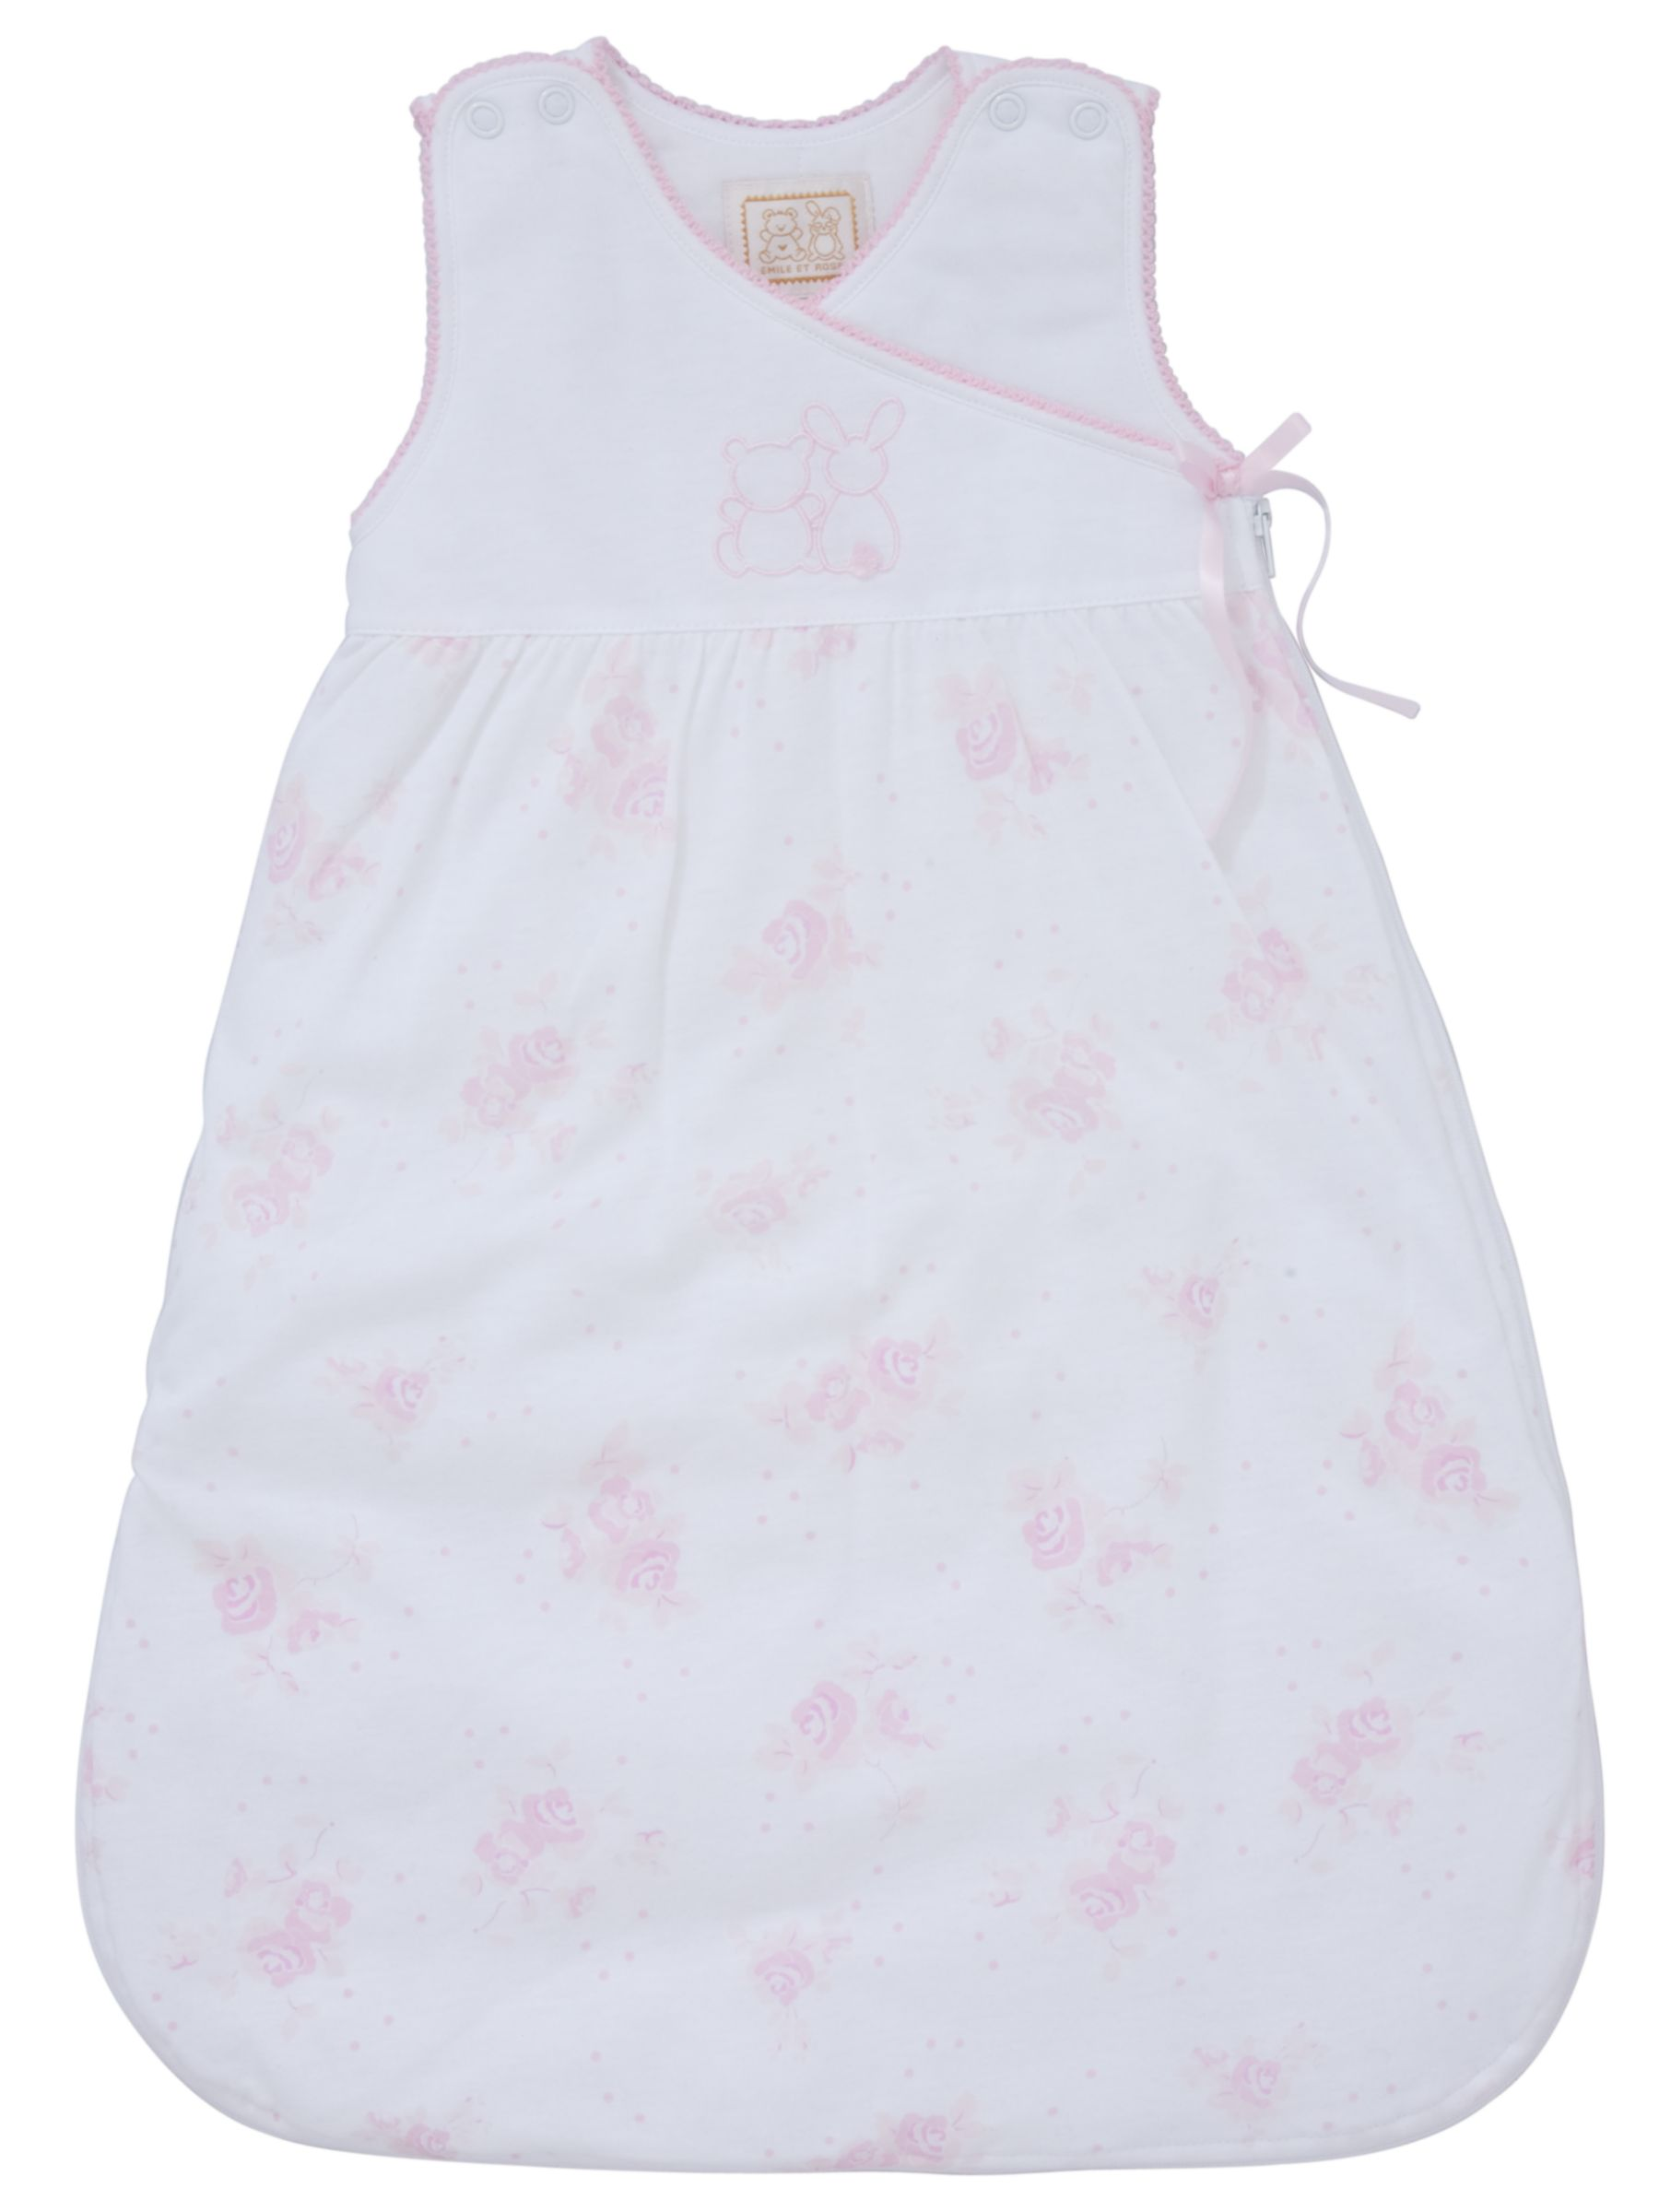 Floral Sleeping Bag, 2.5 Tog,